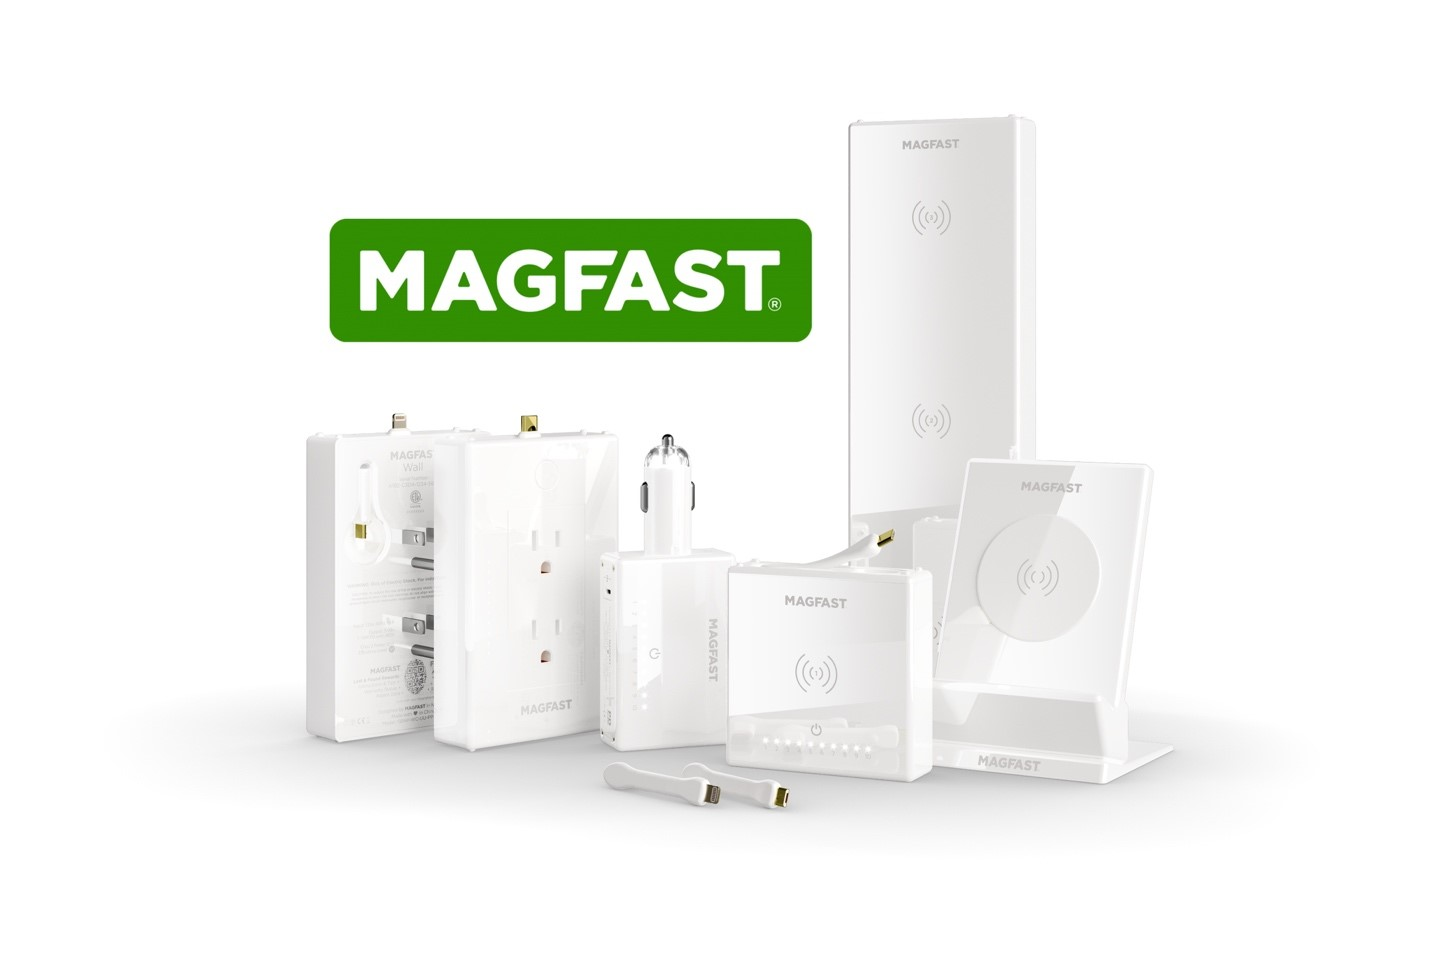 MagFast Charging Products Article Image